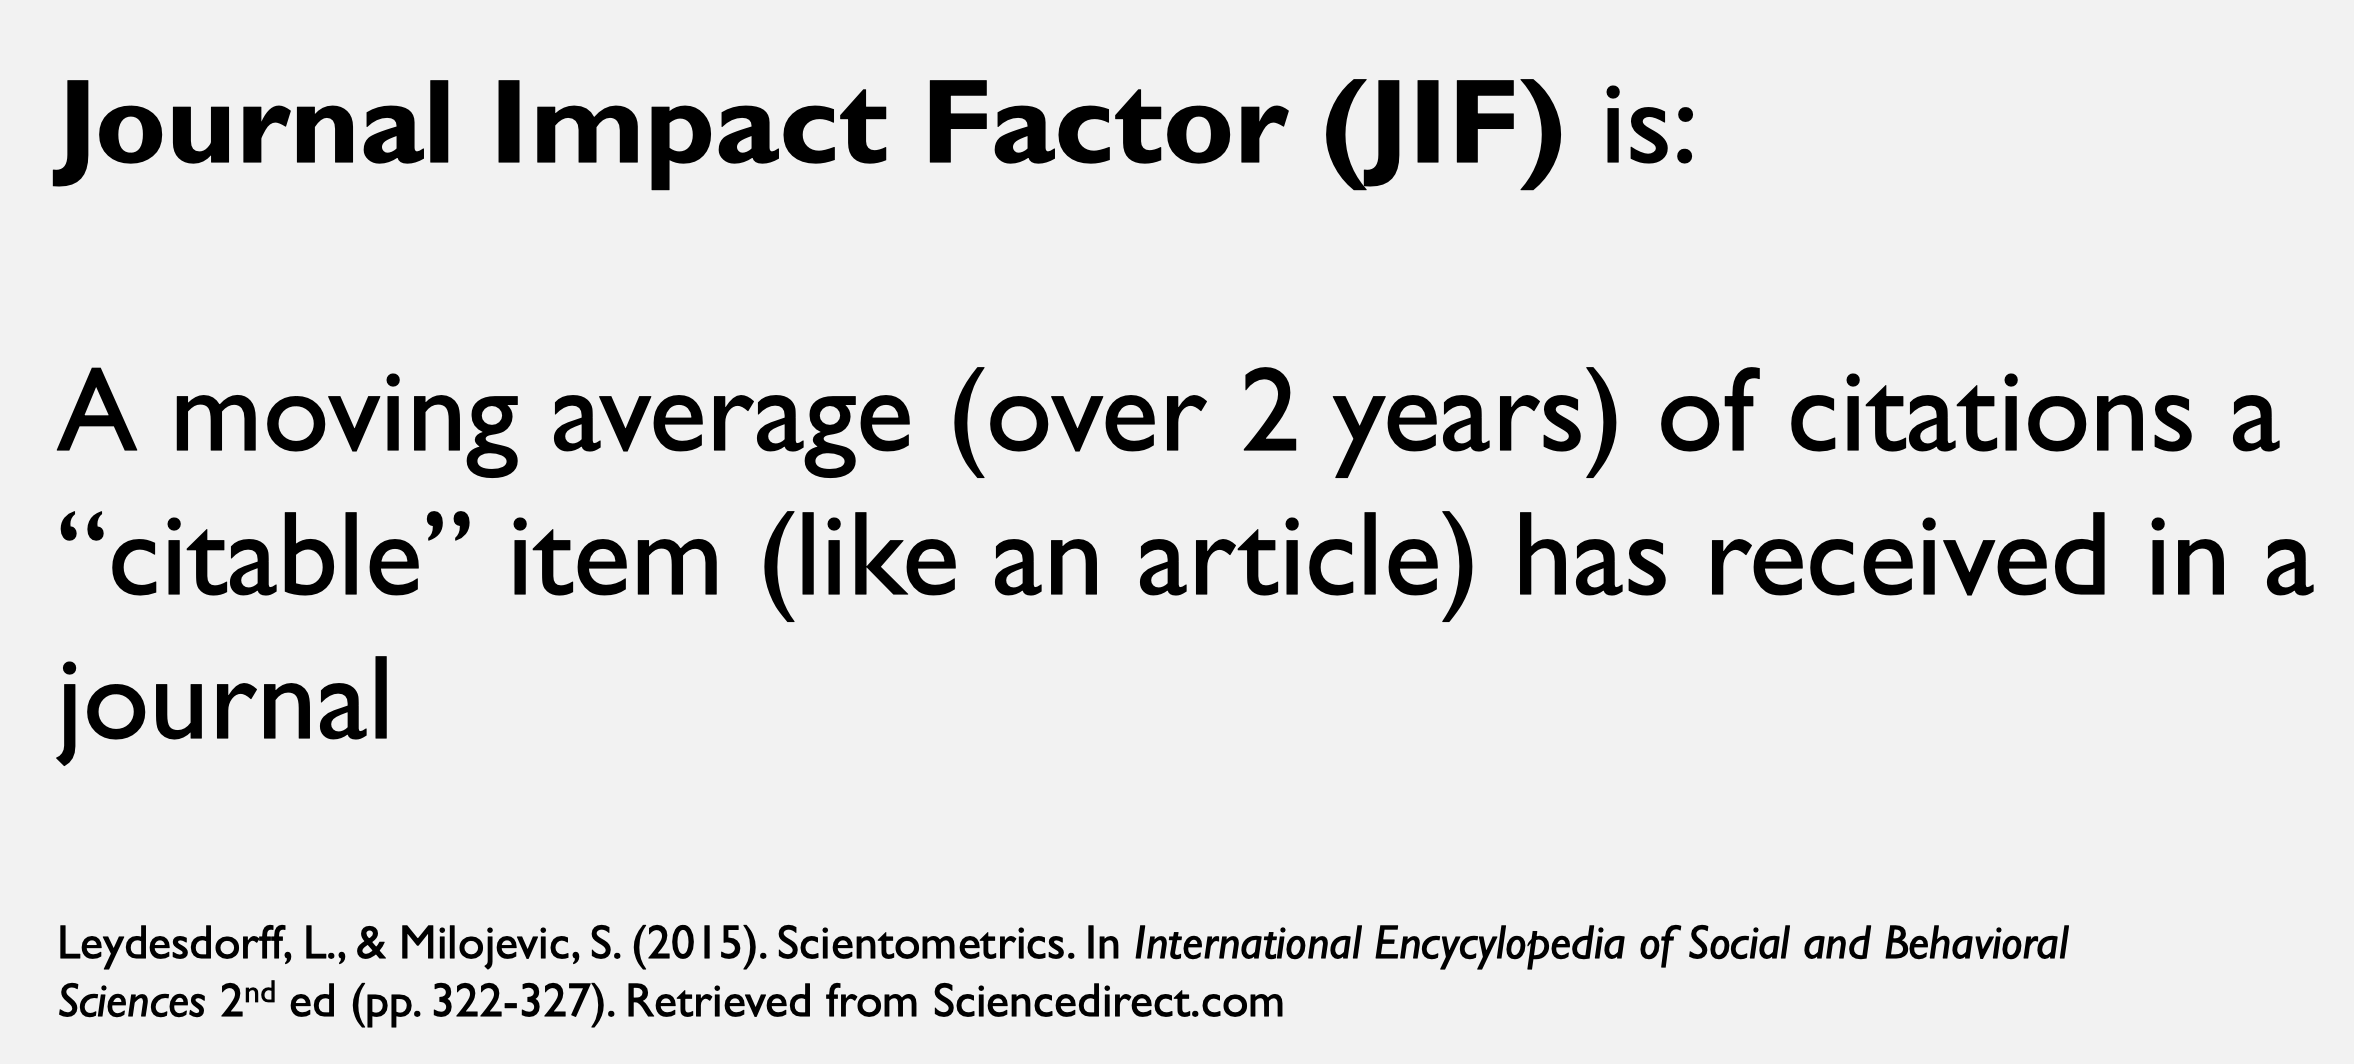 about the journal impact factor JIF